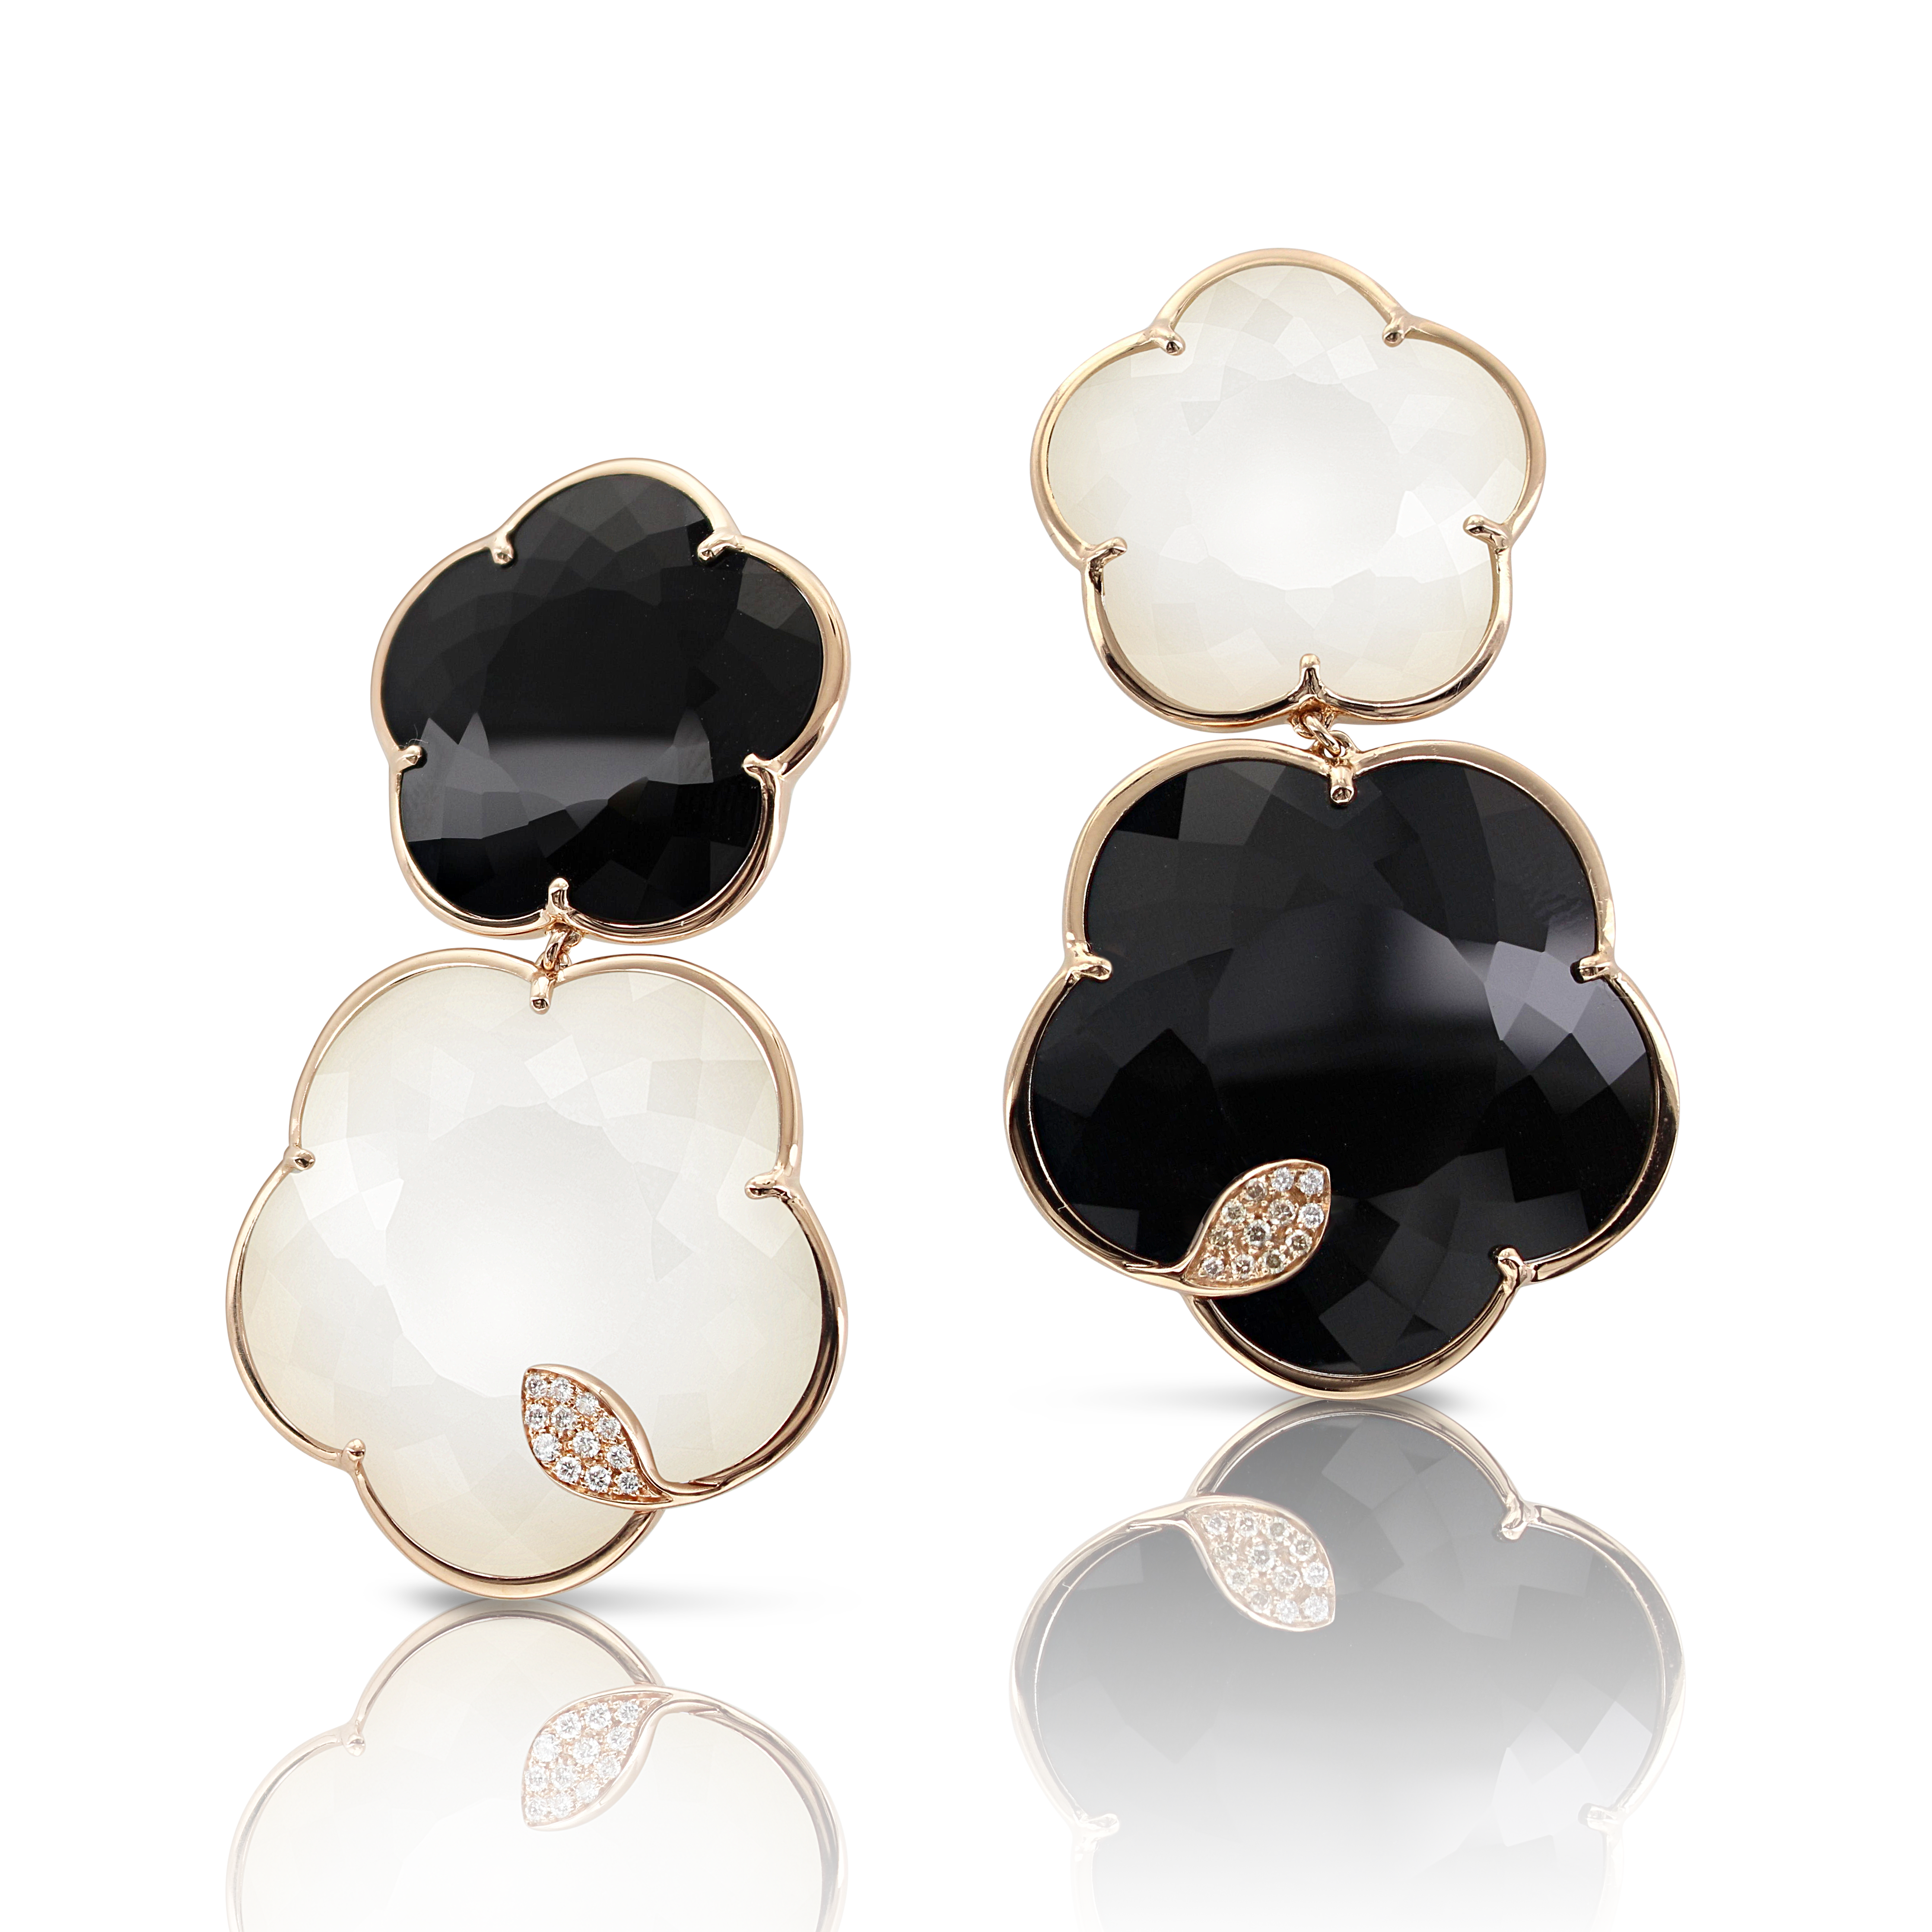 18k Rose Gold Ton Joli Earrings with White Agate, Mother of Pearl, Onyx, White and Champagne Diamonds